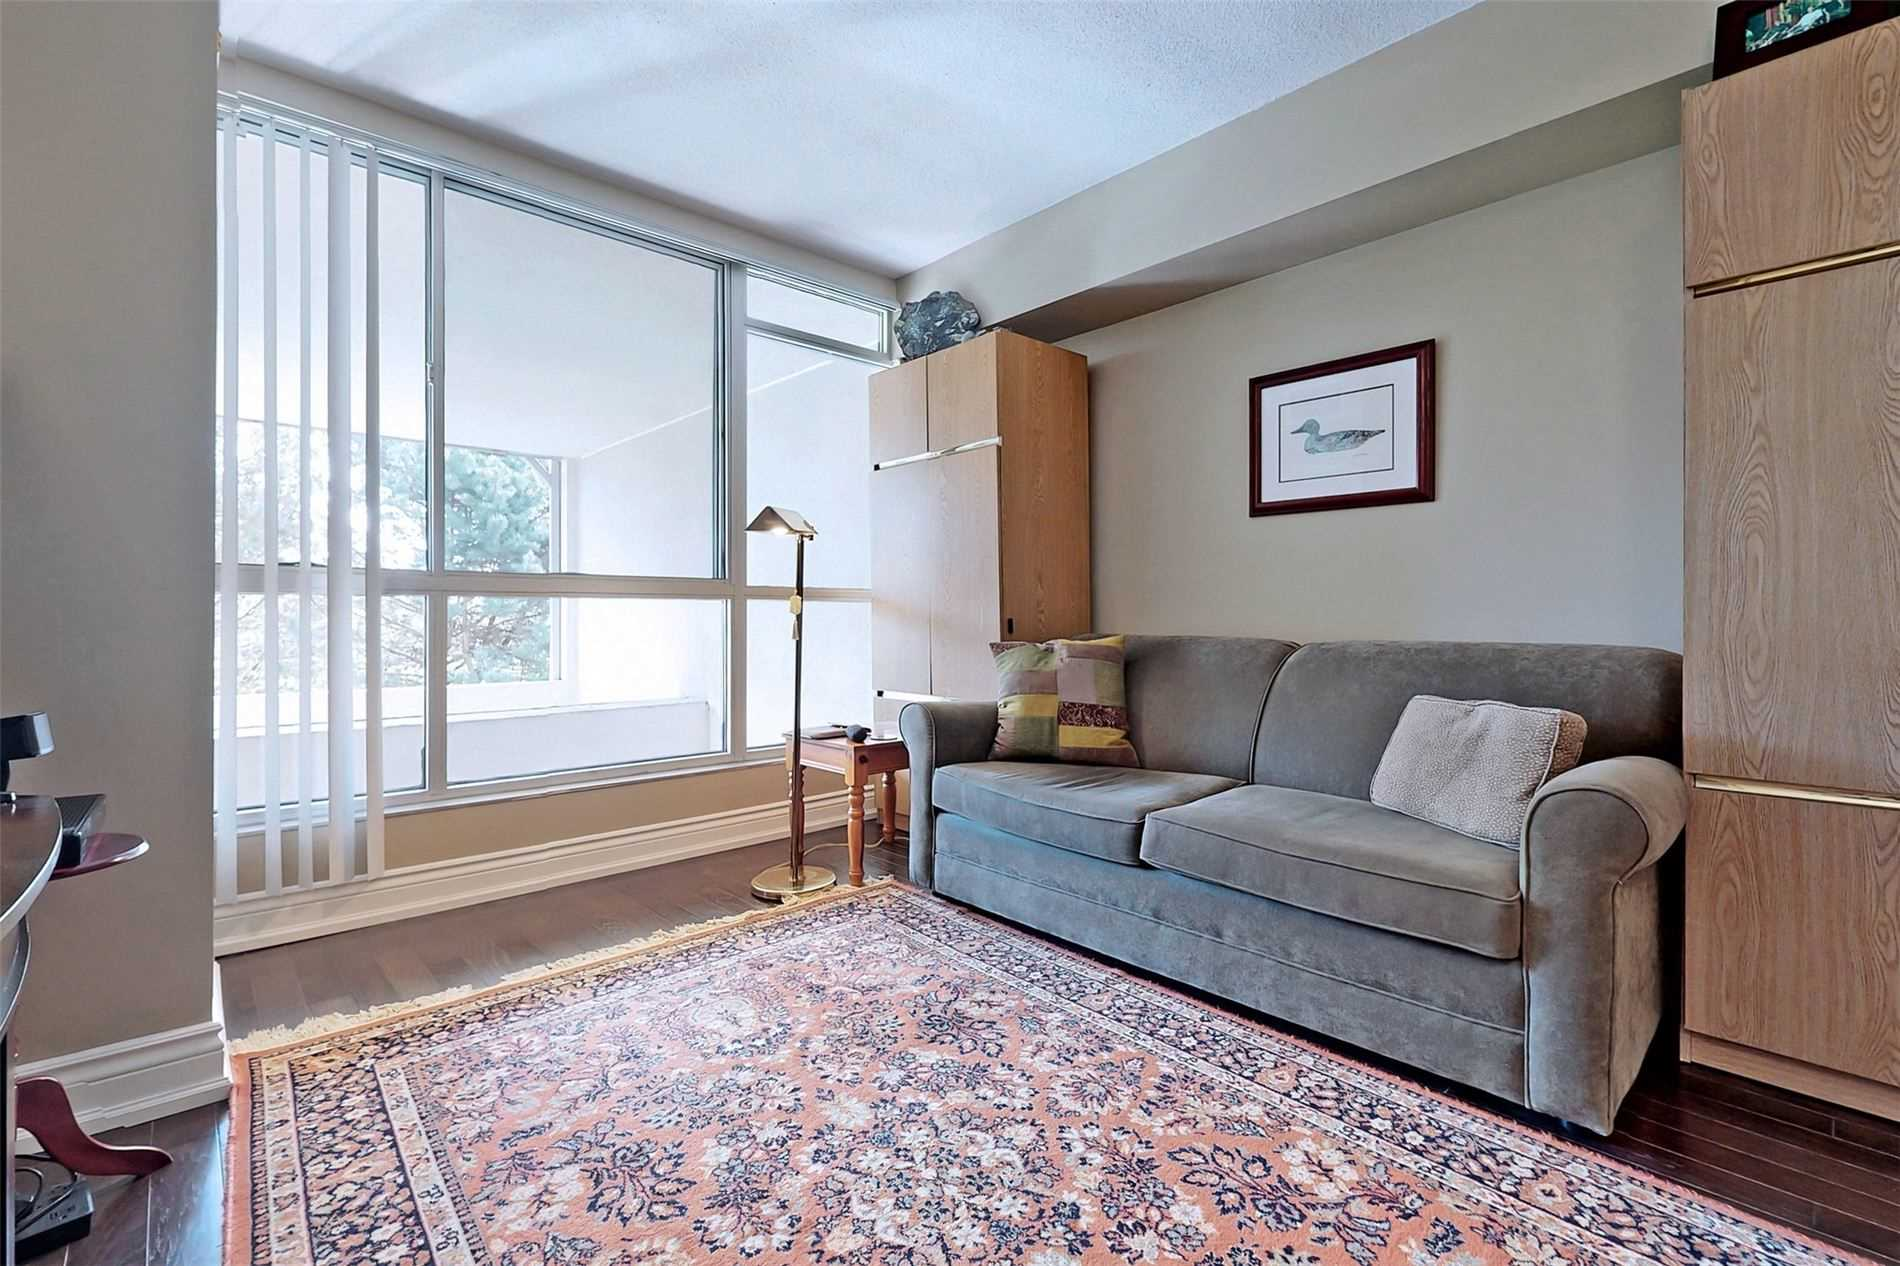 Image 15 of 40 showing inside of 2 Bedroom Condo Apt 2-Storey for Sale at 25 Cumberland Lane Unit# 105, Ajax L1S7K1